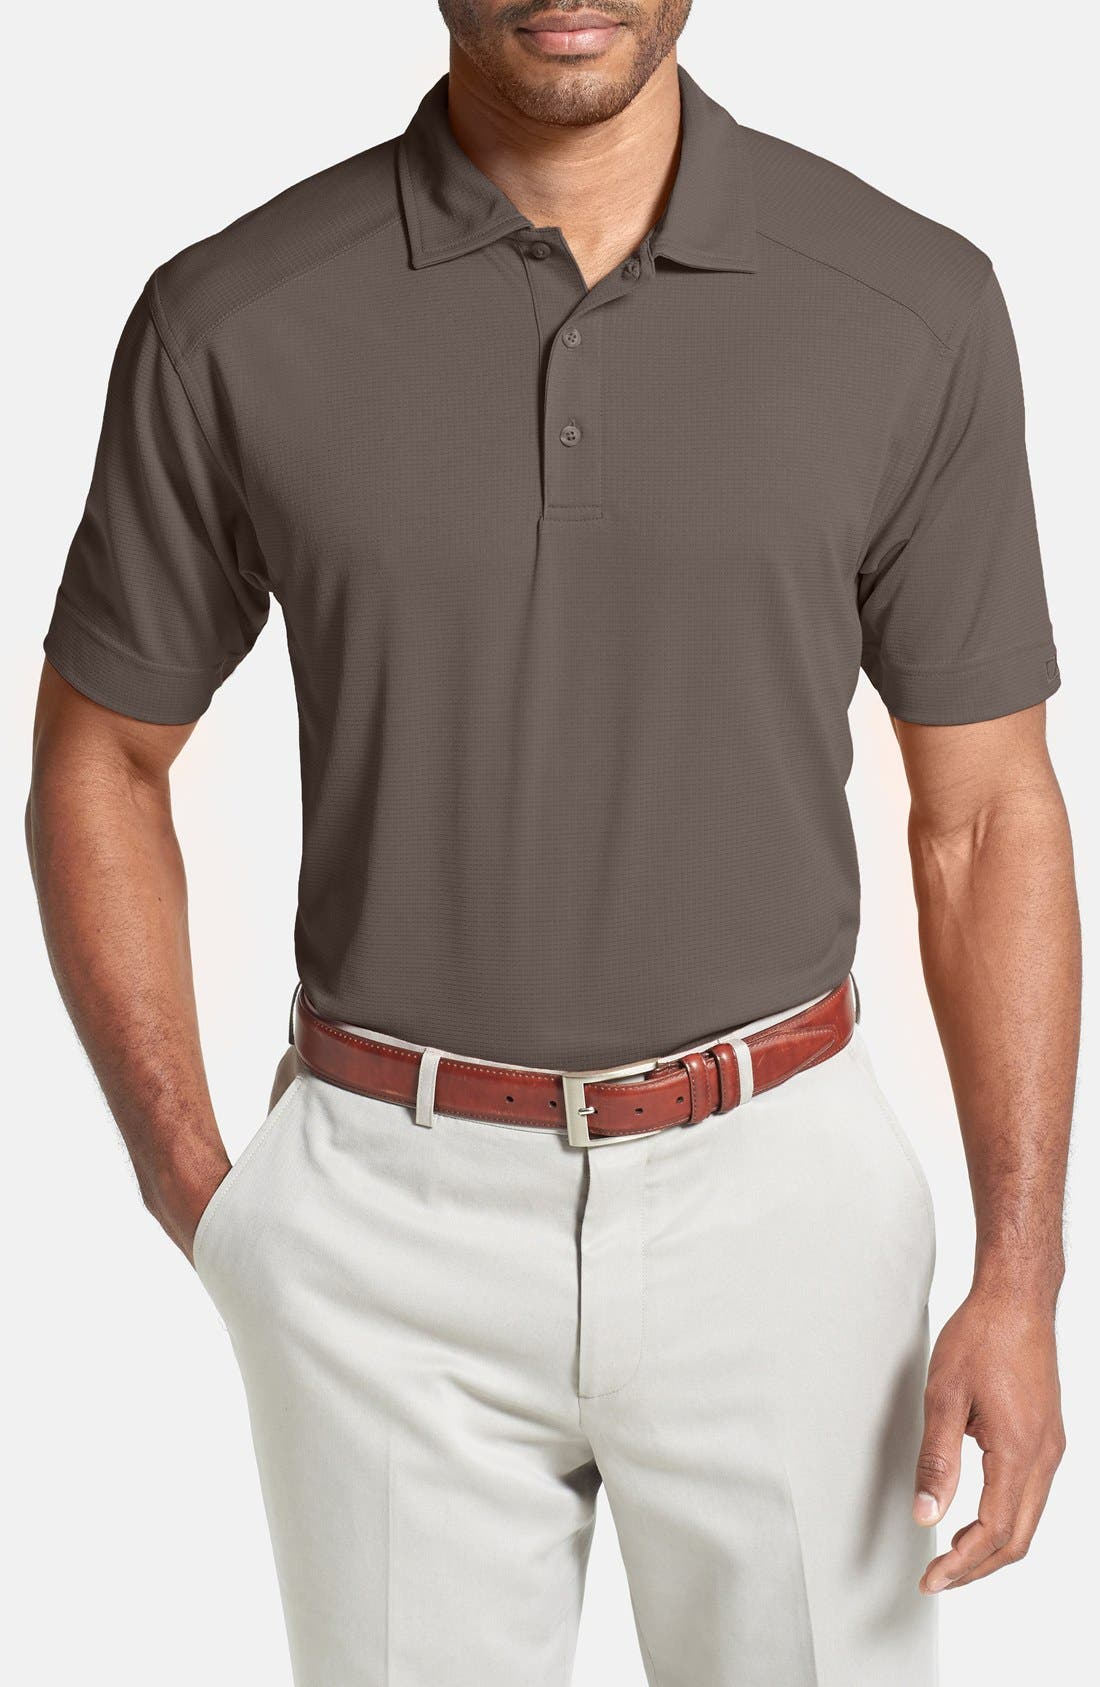 Genre DryTec Moisture Wicking Polo,                         Main,                         color, Circuit Taupe